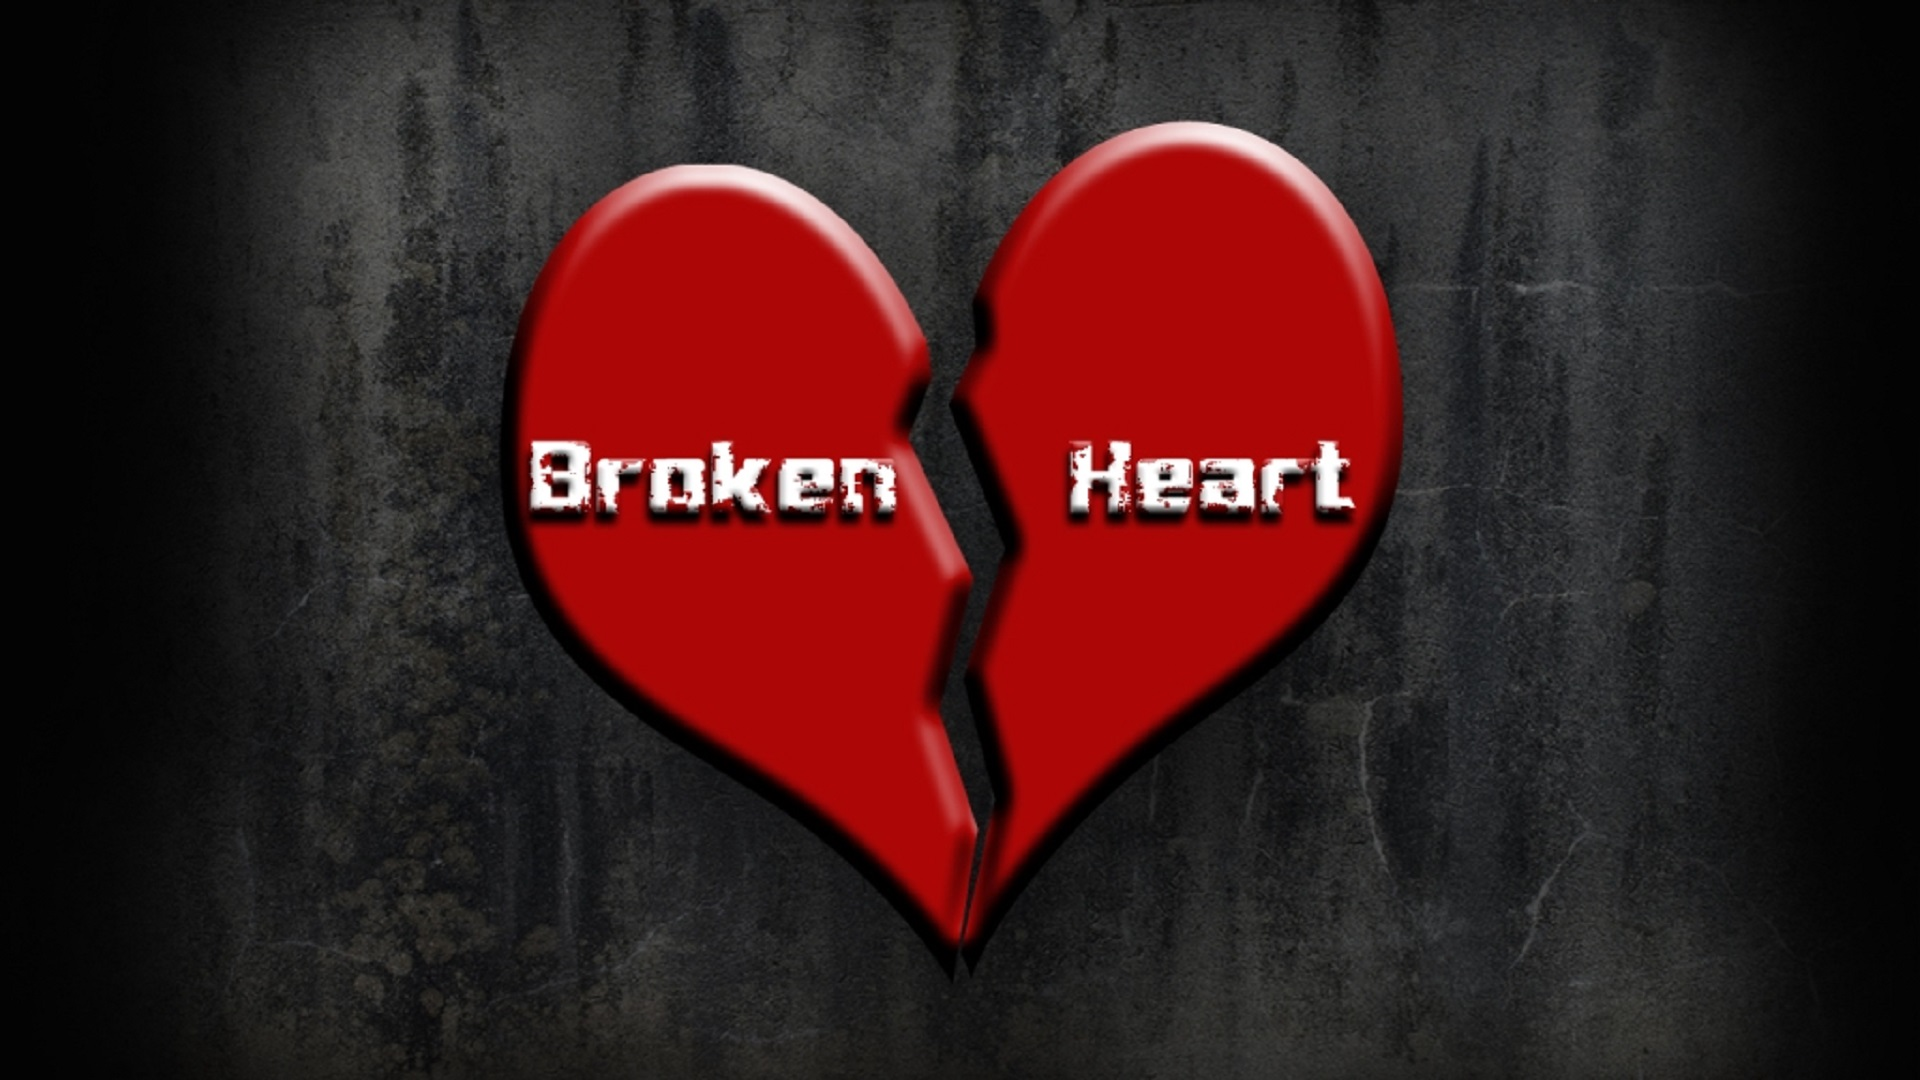 sad broken heart hd free wallpaper   HD Wallpaper 1920x1080